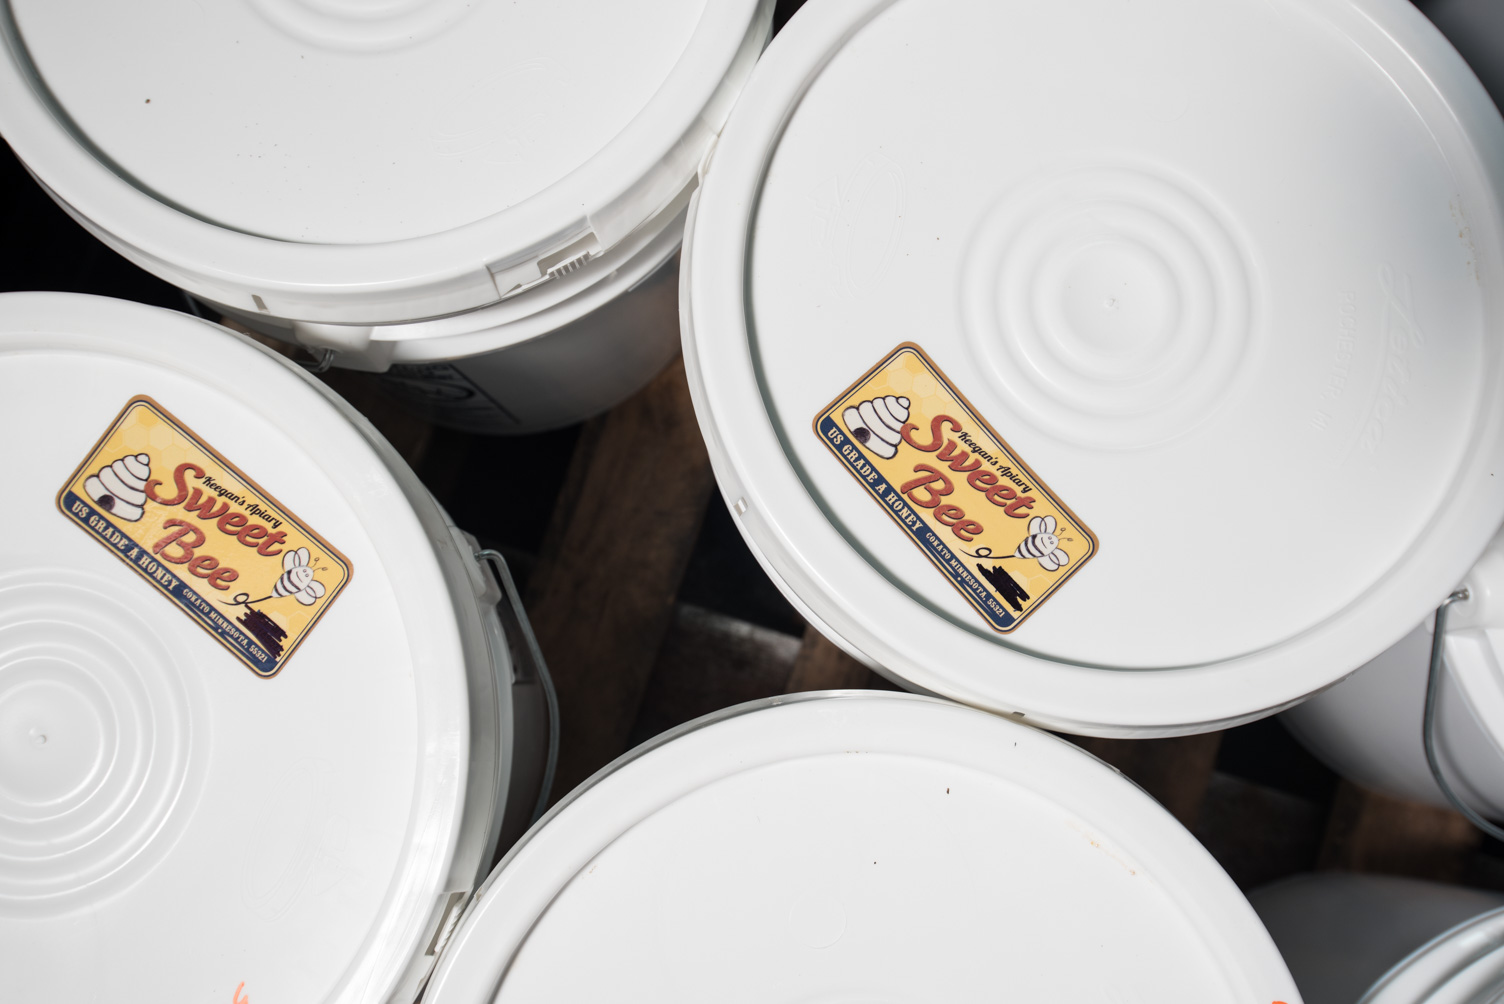 HEXIT used 600 pounds of Sweet Bee honey from Rufer's Apiaries, Inc. // Photo by Kevin Kramer